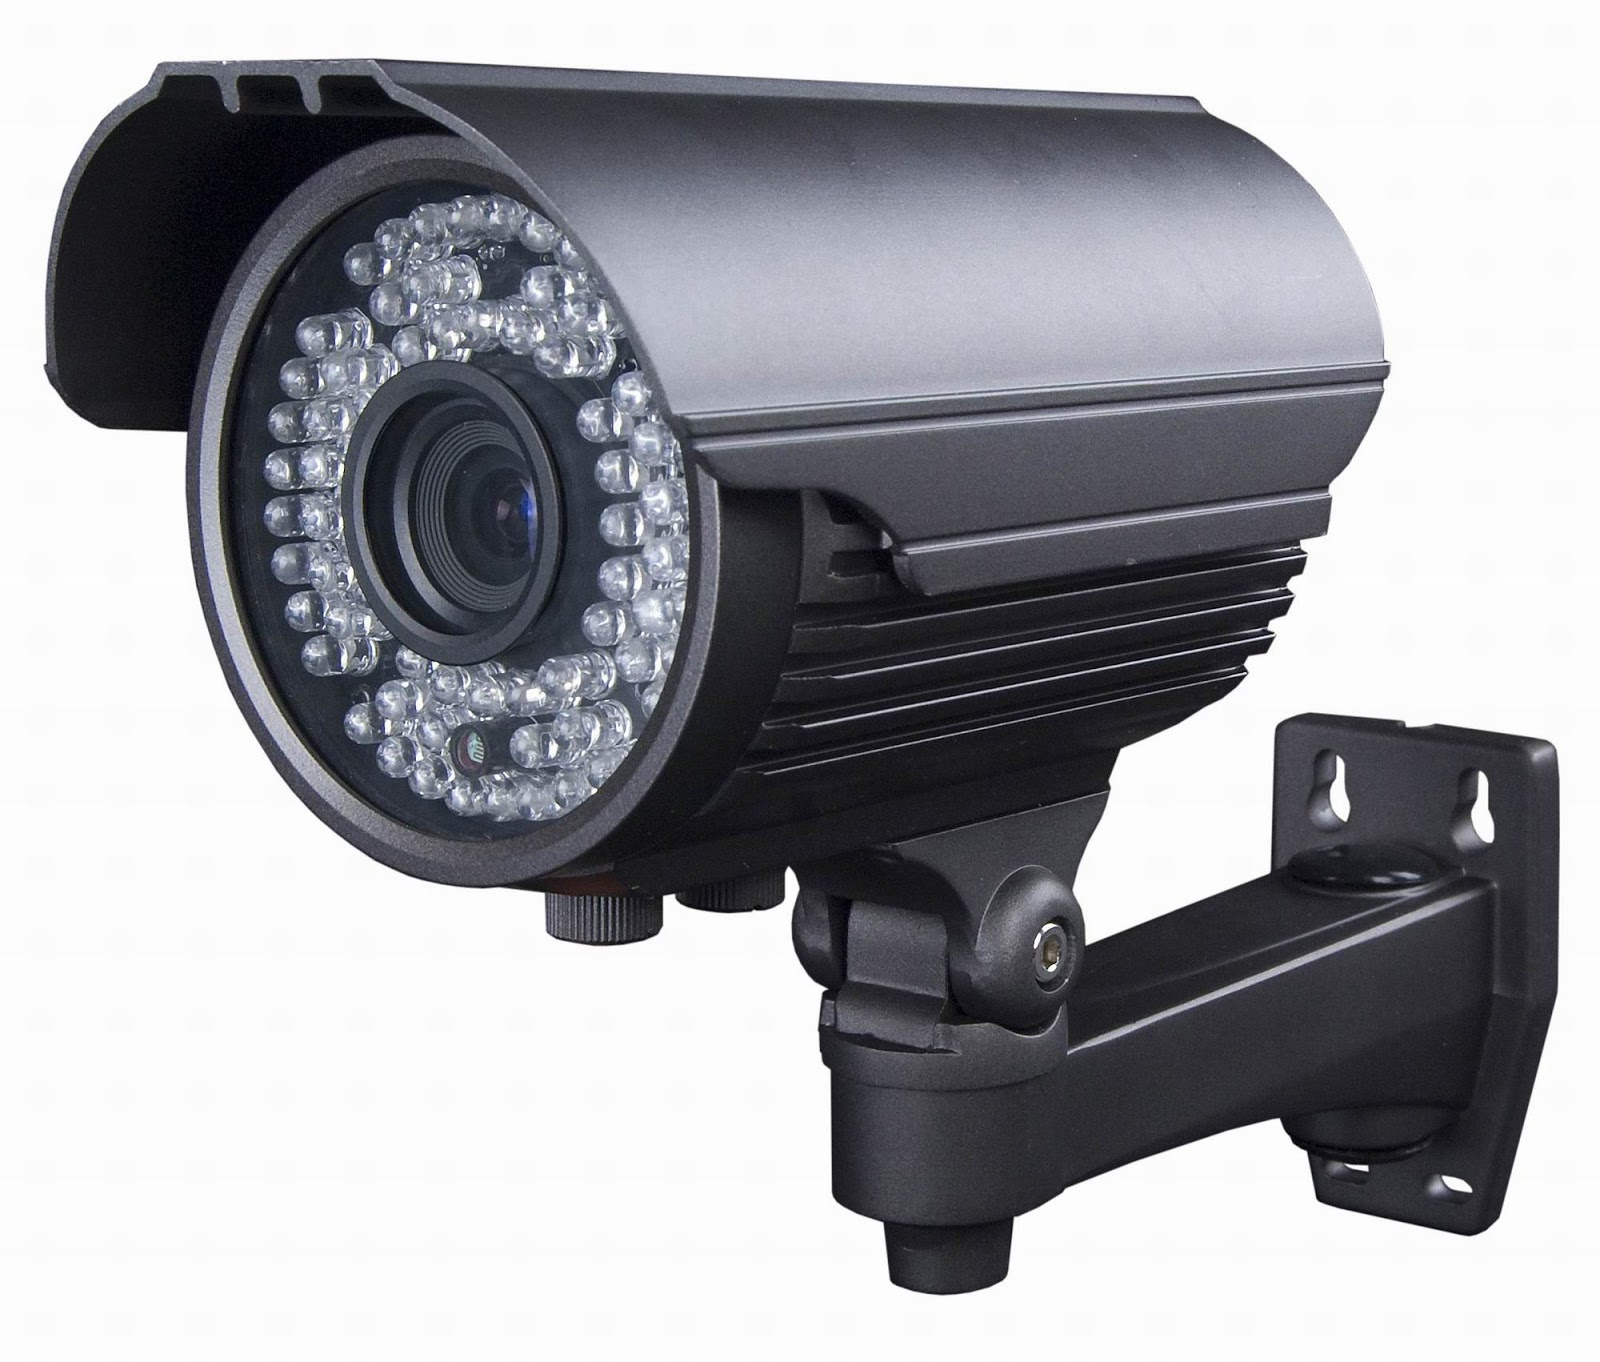 Wireless outdoor surveillance cameras for home